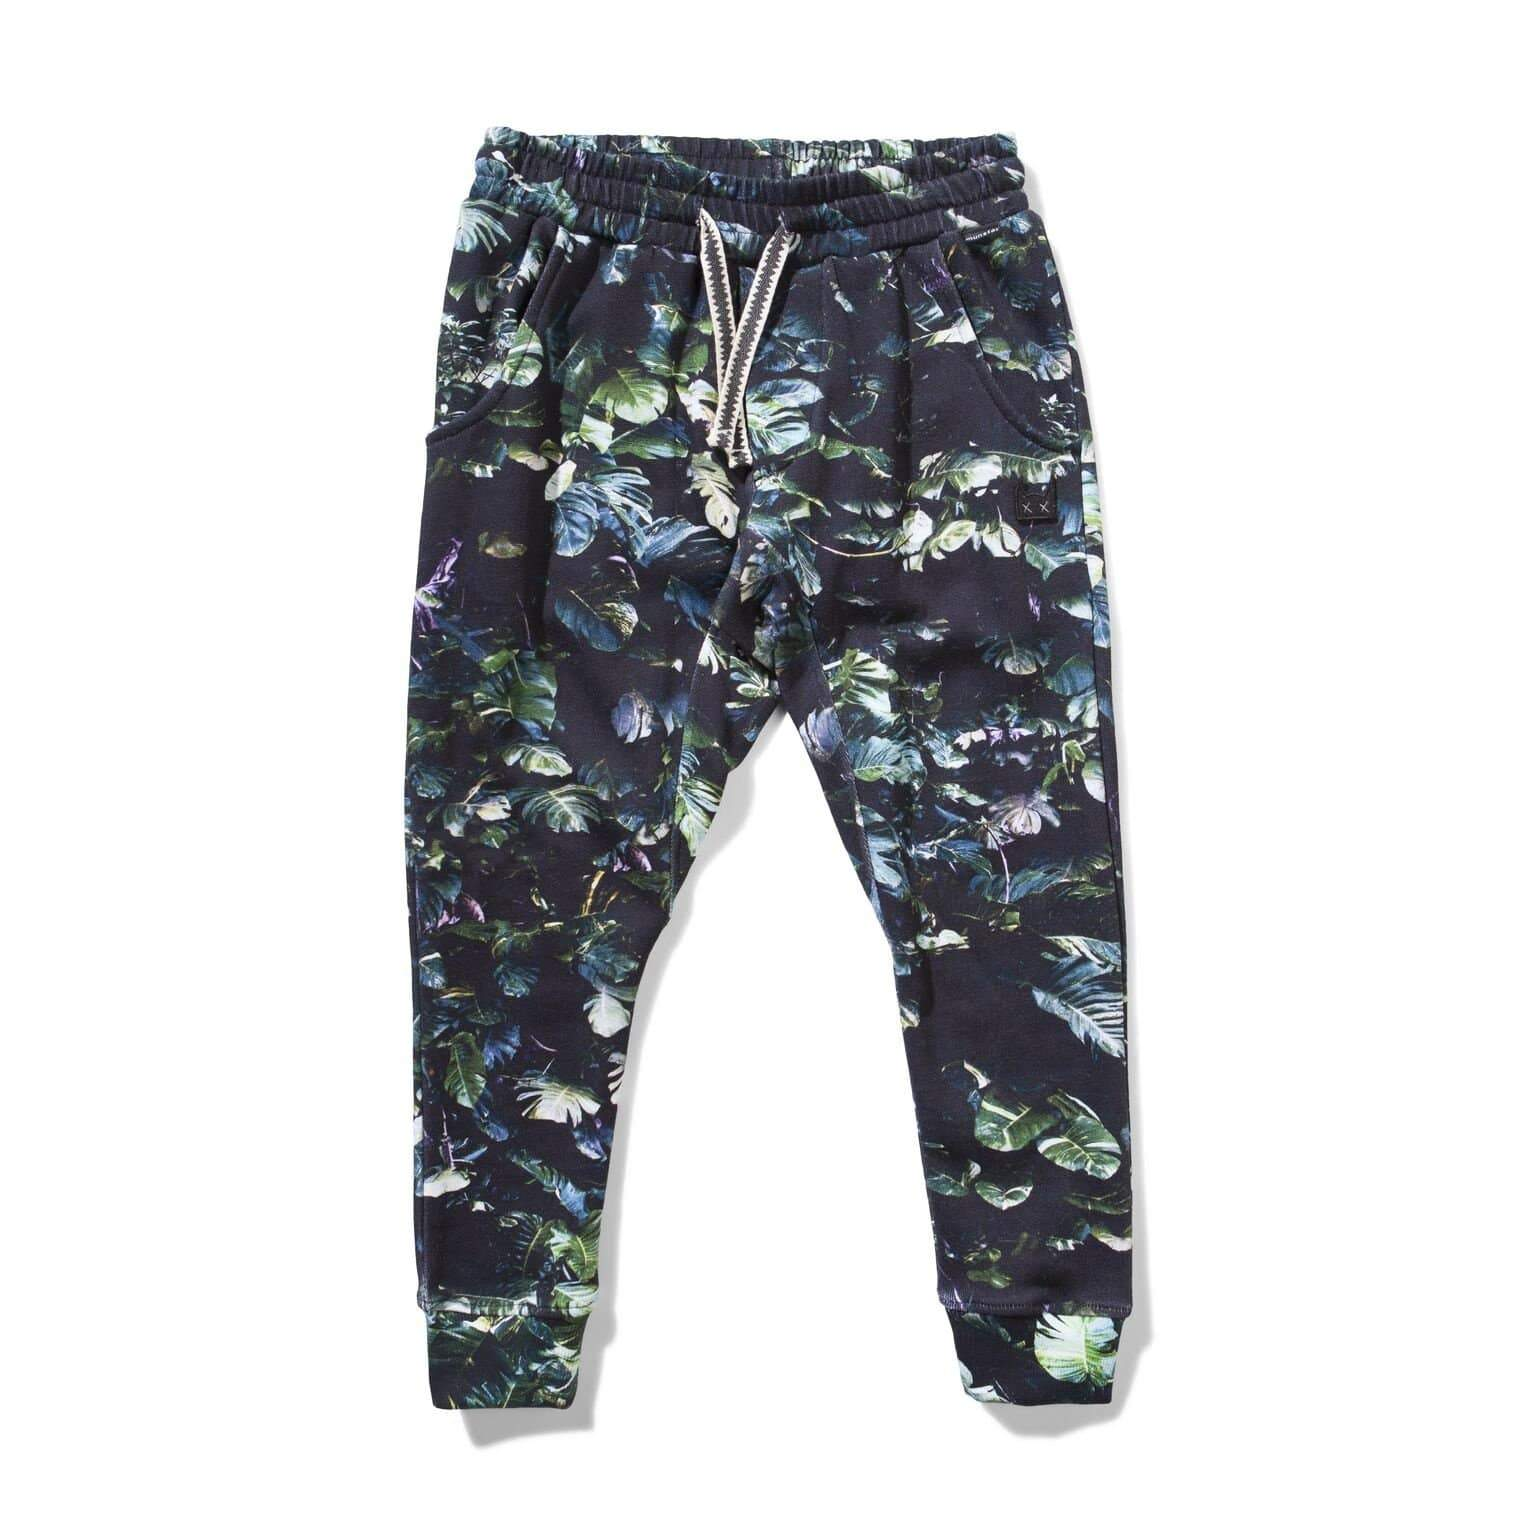 Munster Track Pants Foiled Trackpant - Leaf